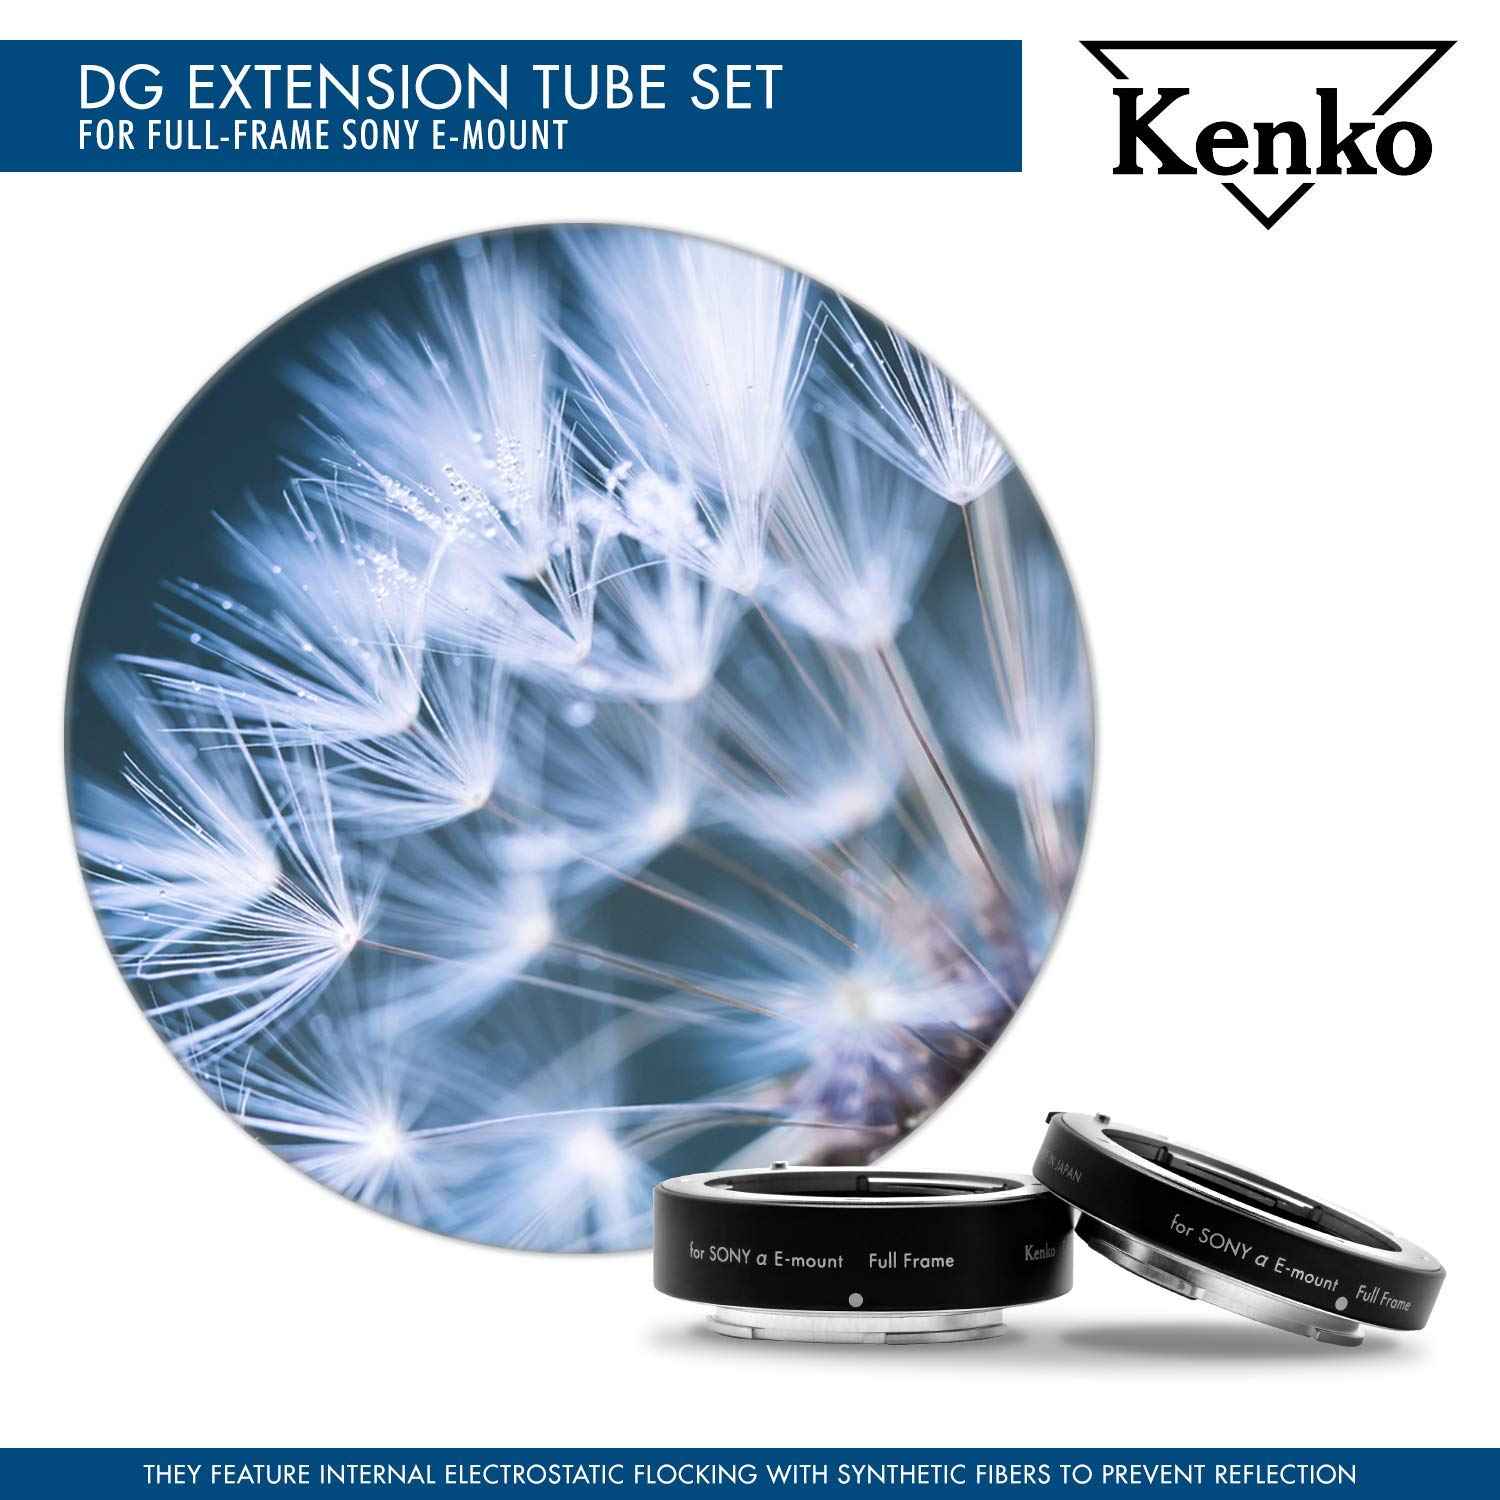 Lens Pouch /& Cleaning Accessories Kenko Extension Tube Set DG 12, 20 /& 36mm Tubes for Canon 1Dx Mark II 5D Mark IV III II 5Ds R 6D Mark II 7D Mark II 90D 80D 70D 77D T7i T6s T6i T5i SL3 T7 T6 /& T5